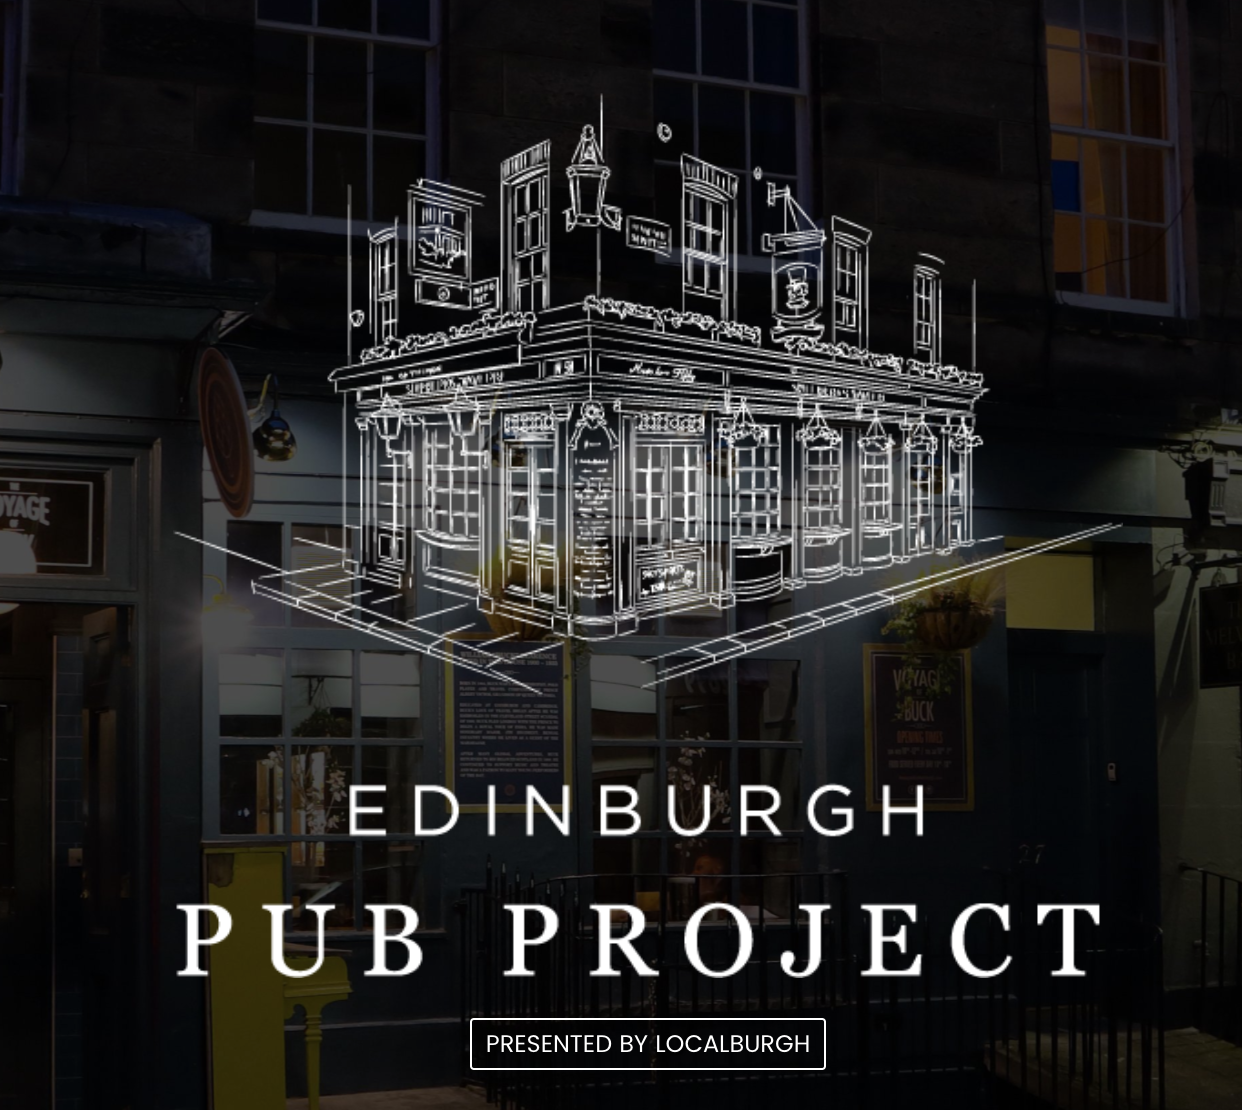 Edinburgh Pub Project